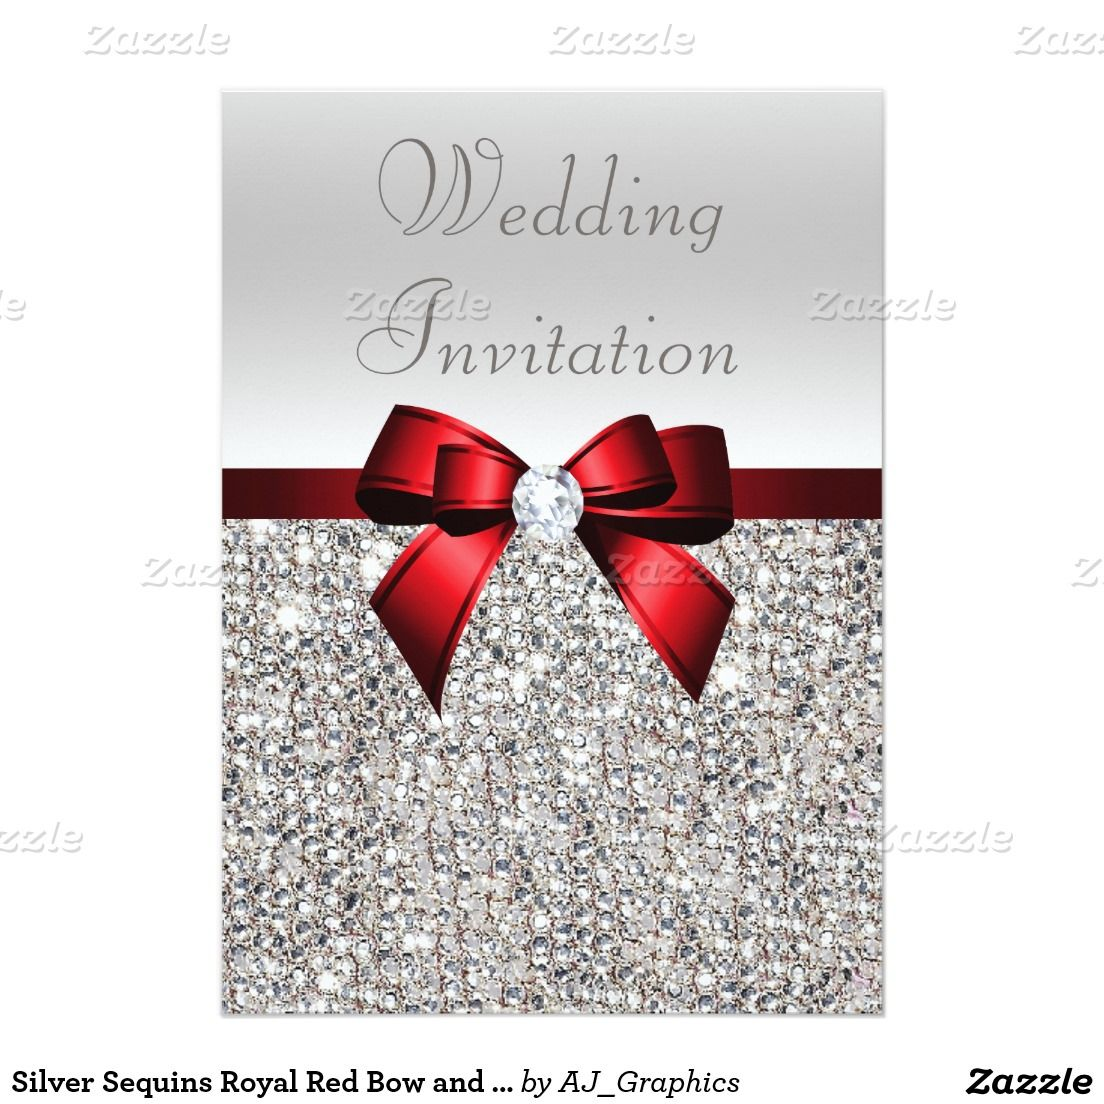 Silver Sequins Royal Red Bow and Diamond Wedding Card | Royal red ...